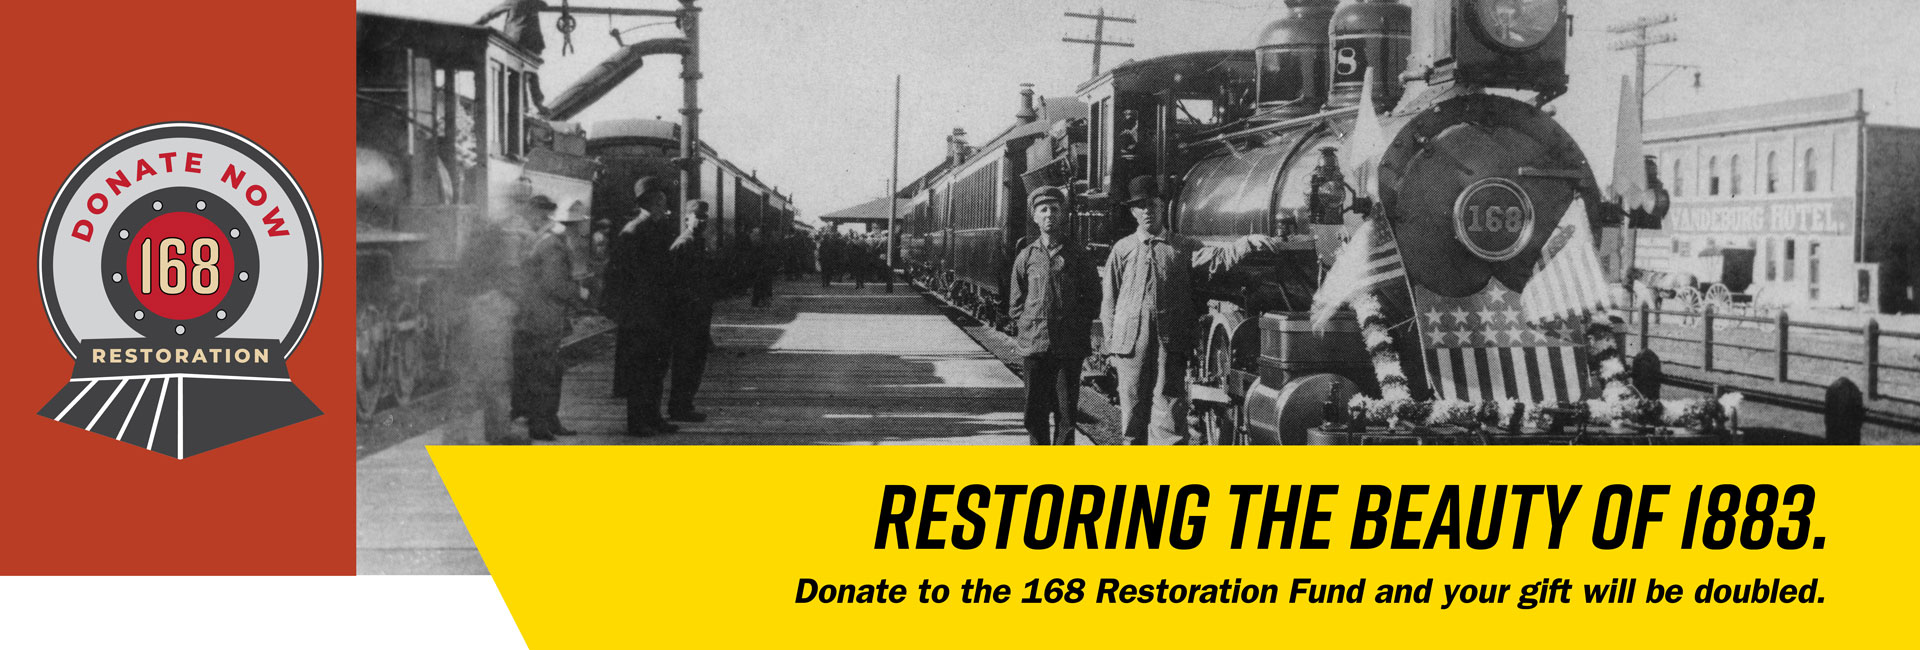 Donate to the 168 Restoration Fund and your gift will be doubled.